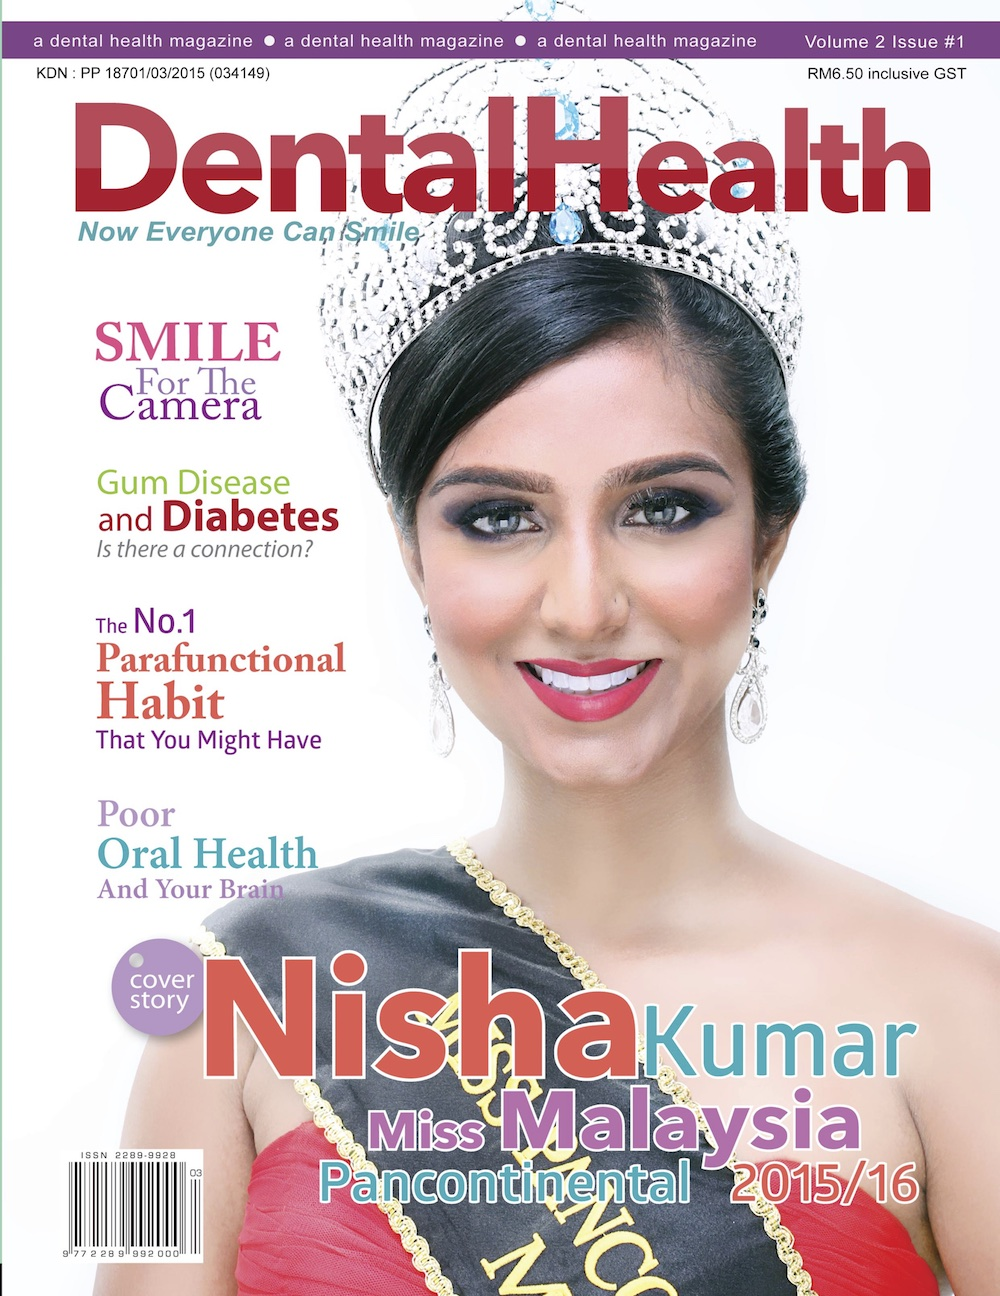 dental-health-3rd-issue-1